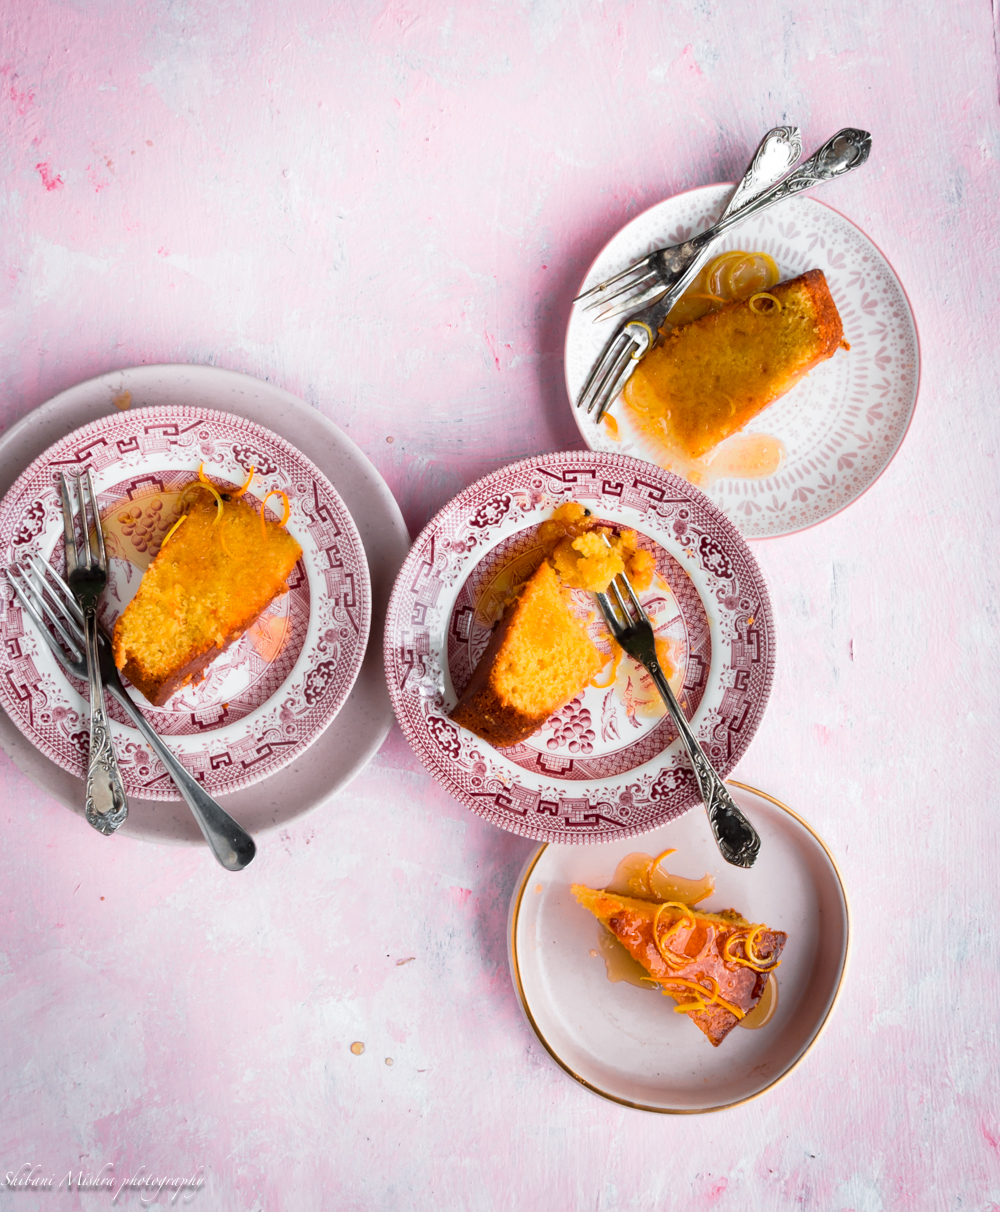 The combination of polenta with almond meal bursting with flavours from seasonal citrus fruits makes this polenta cake  a bespoke & keepsake recipe.